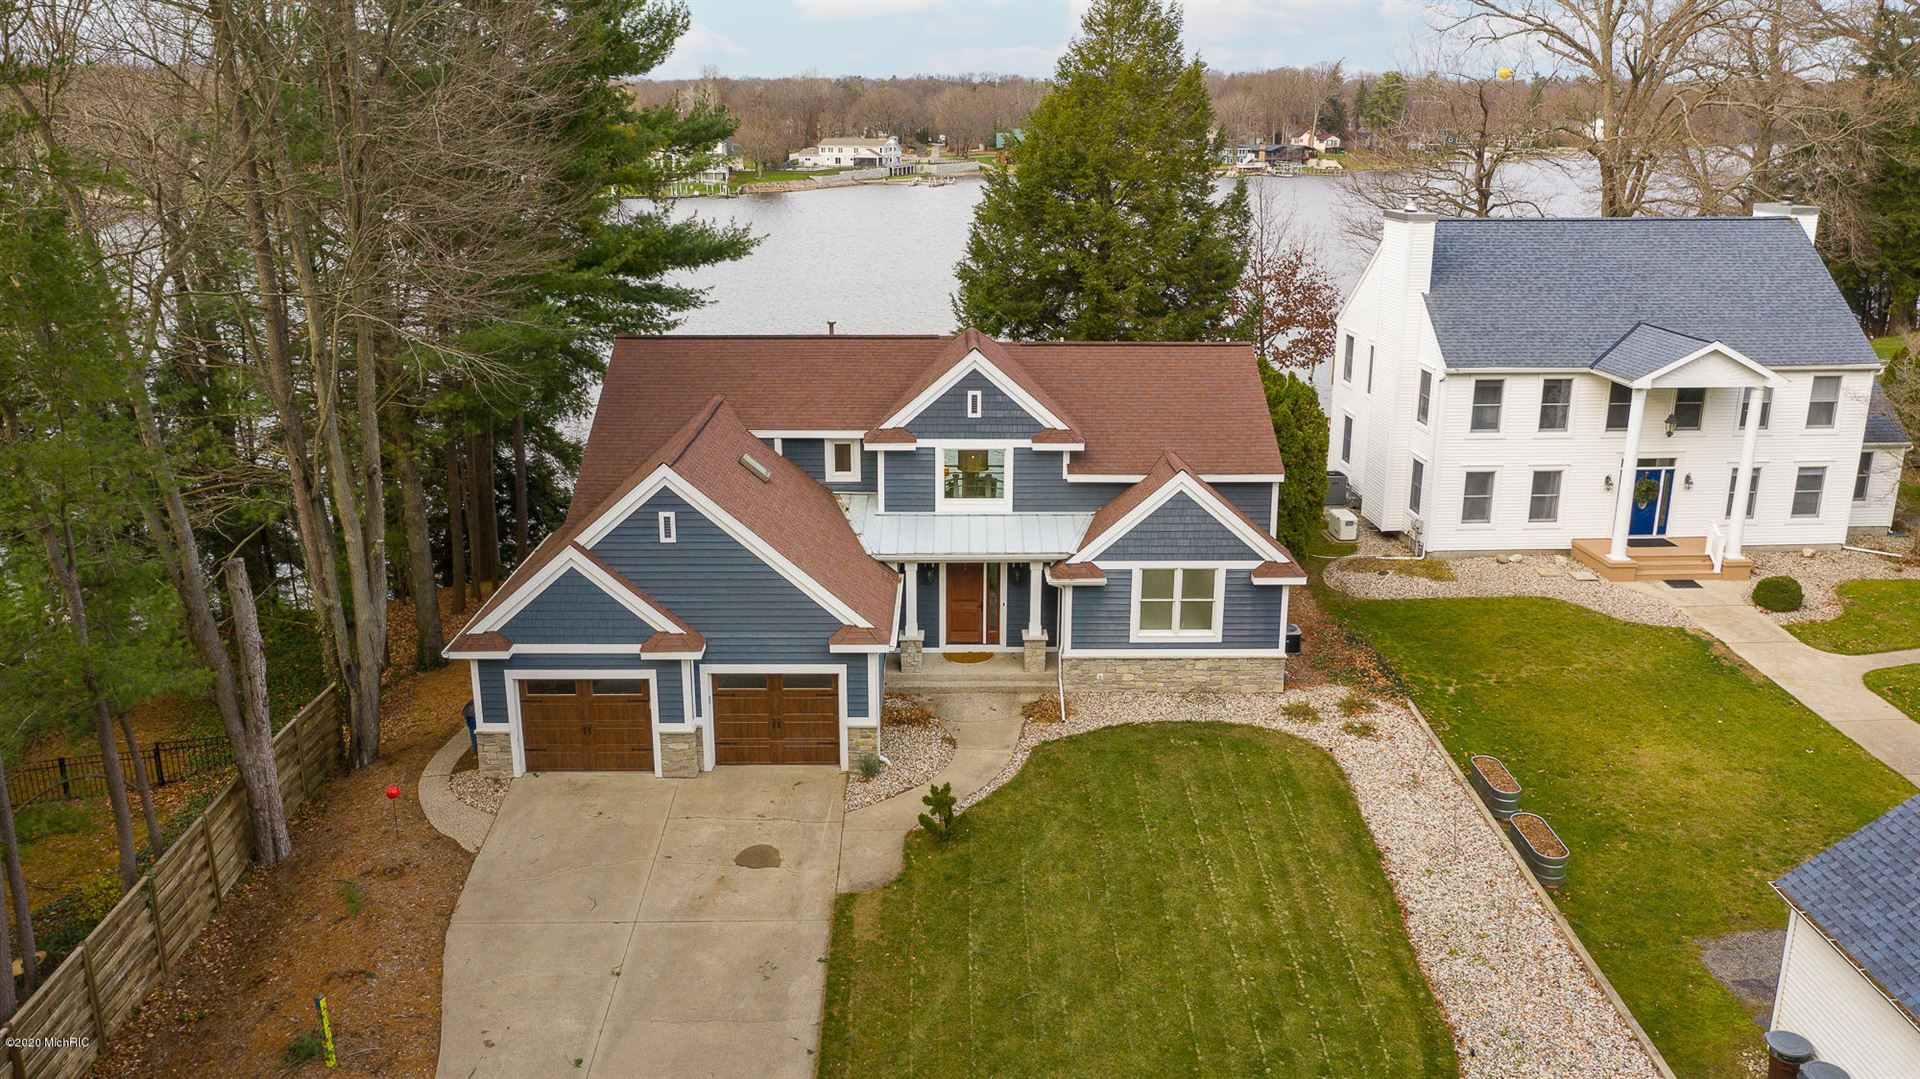 18941 North Fruitport Road, Spring Lake, MI 49456 - MLS#: 20047912